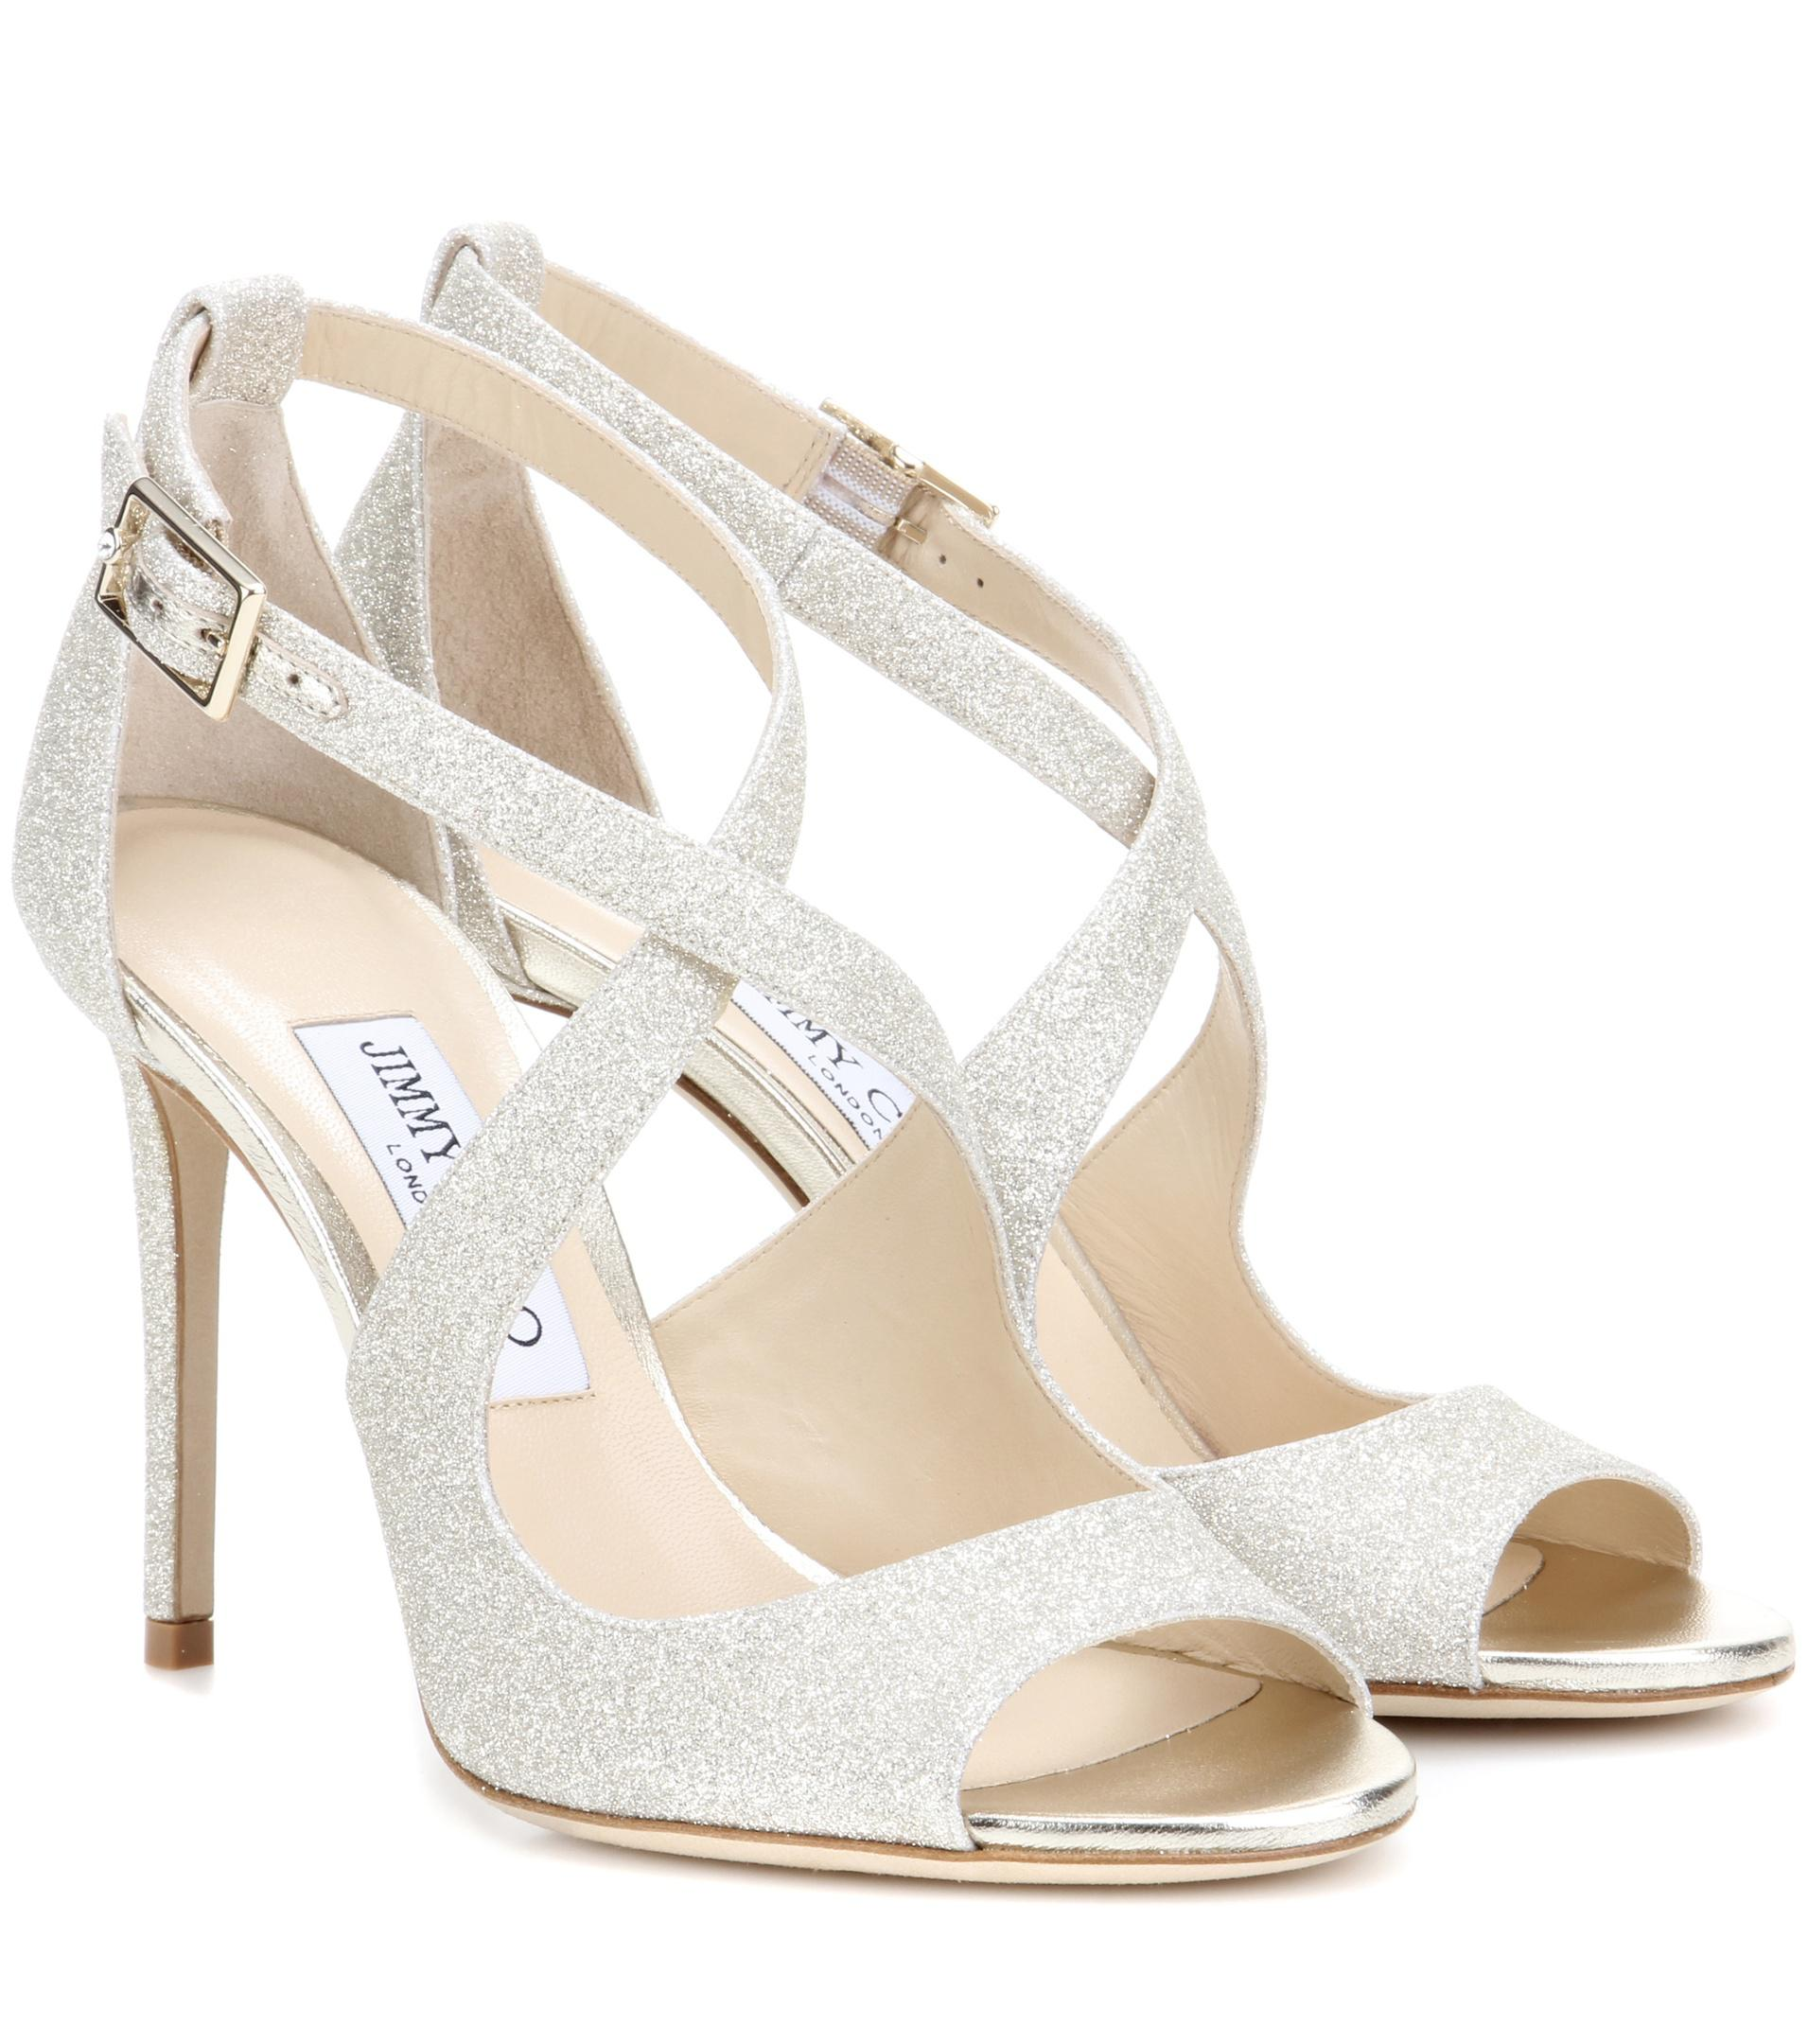 b88c1ad8842de Gallery. Previously sold at  Mytheresa · Women s Jimmy Choo Glitter ...